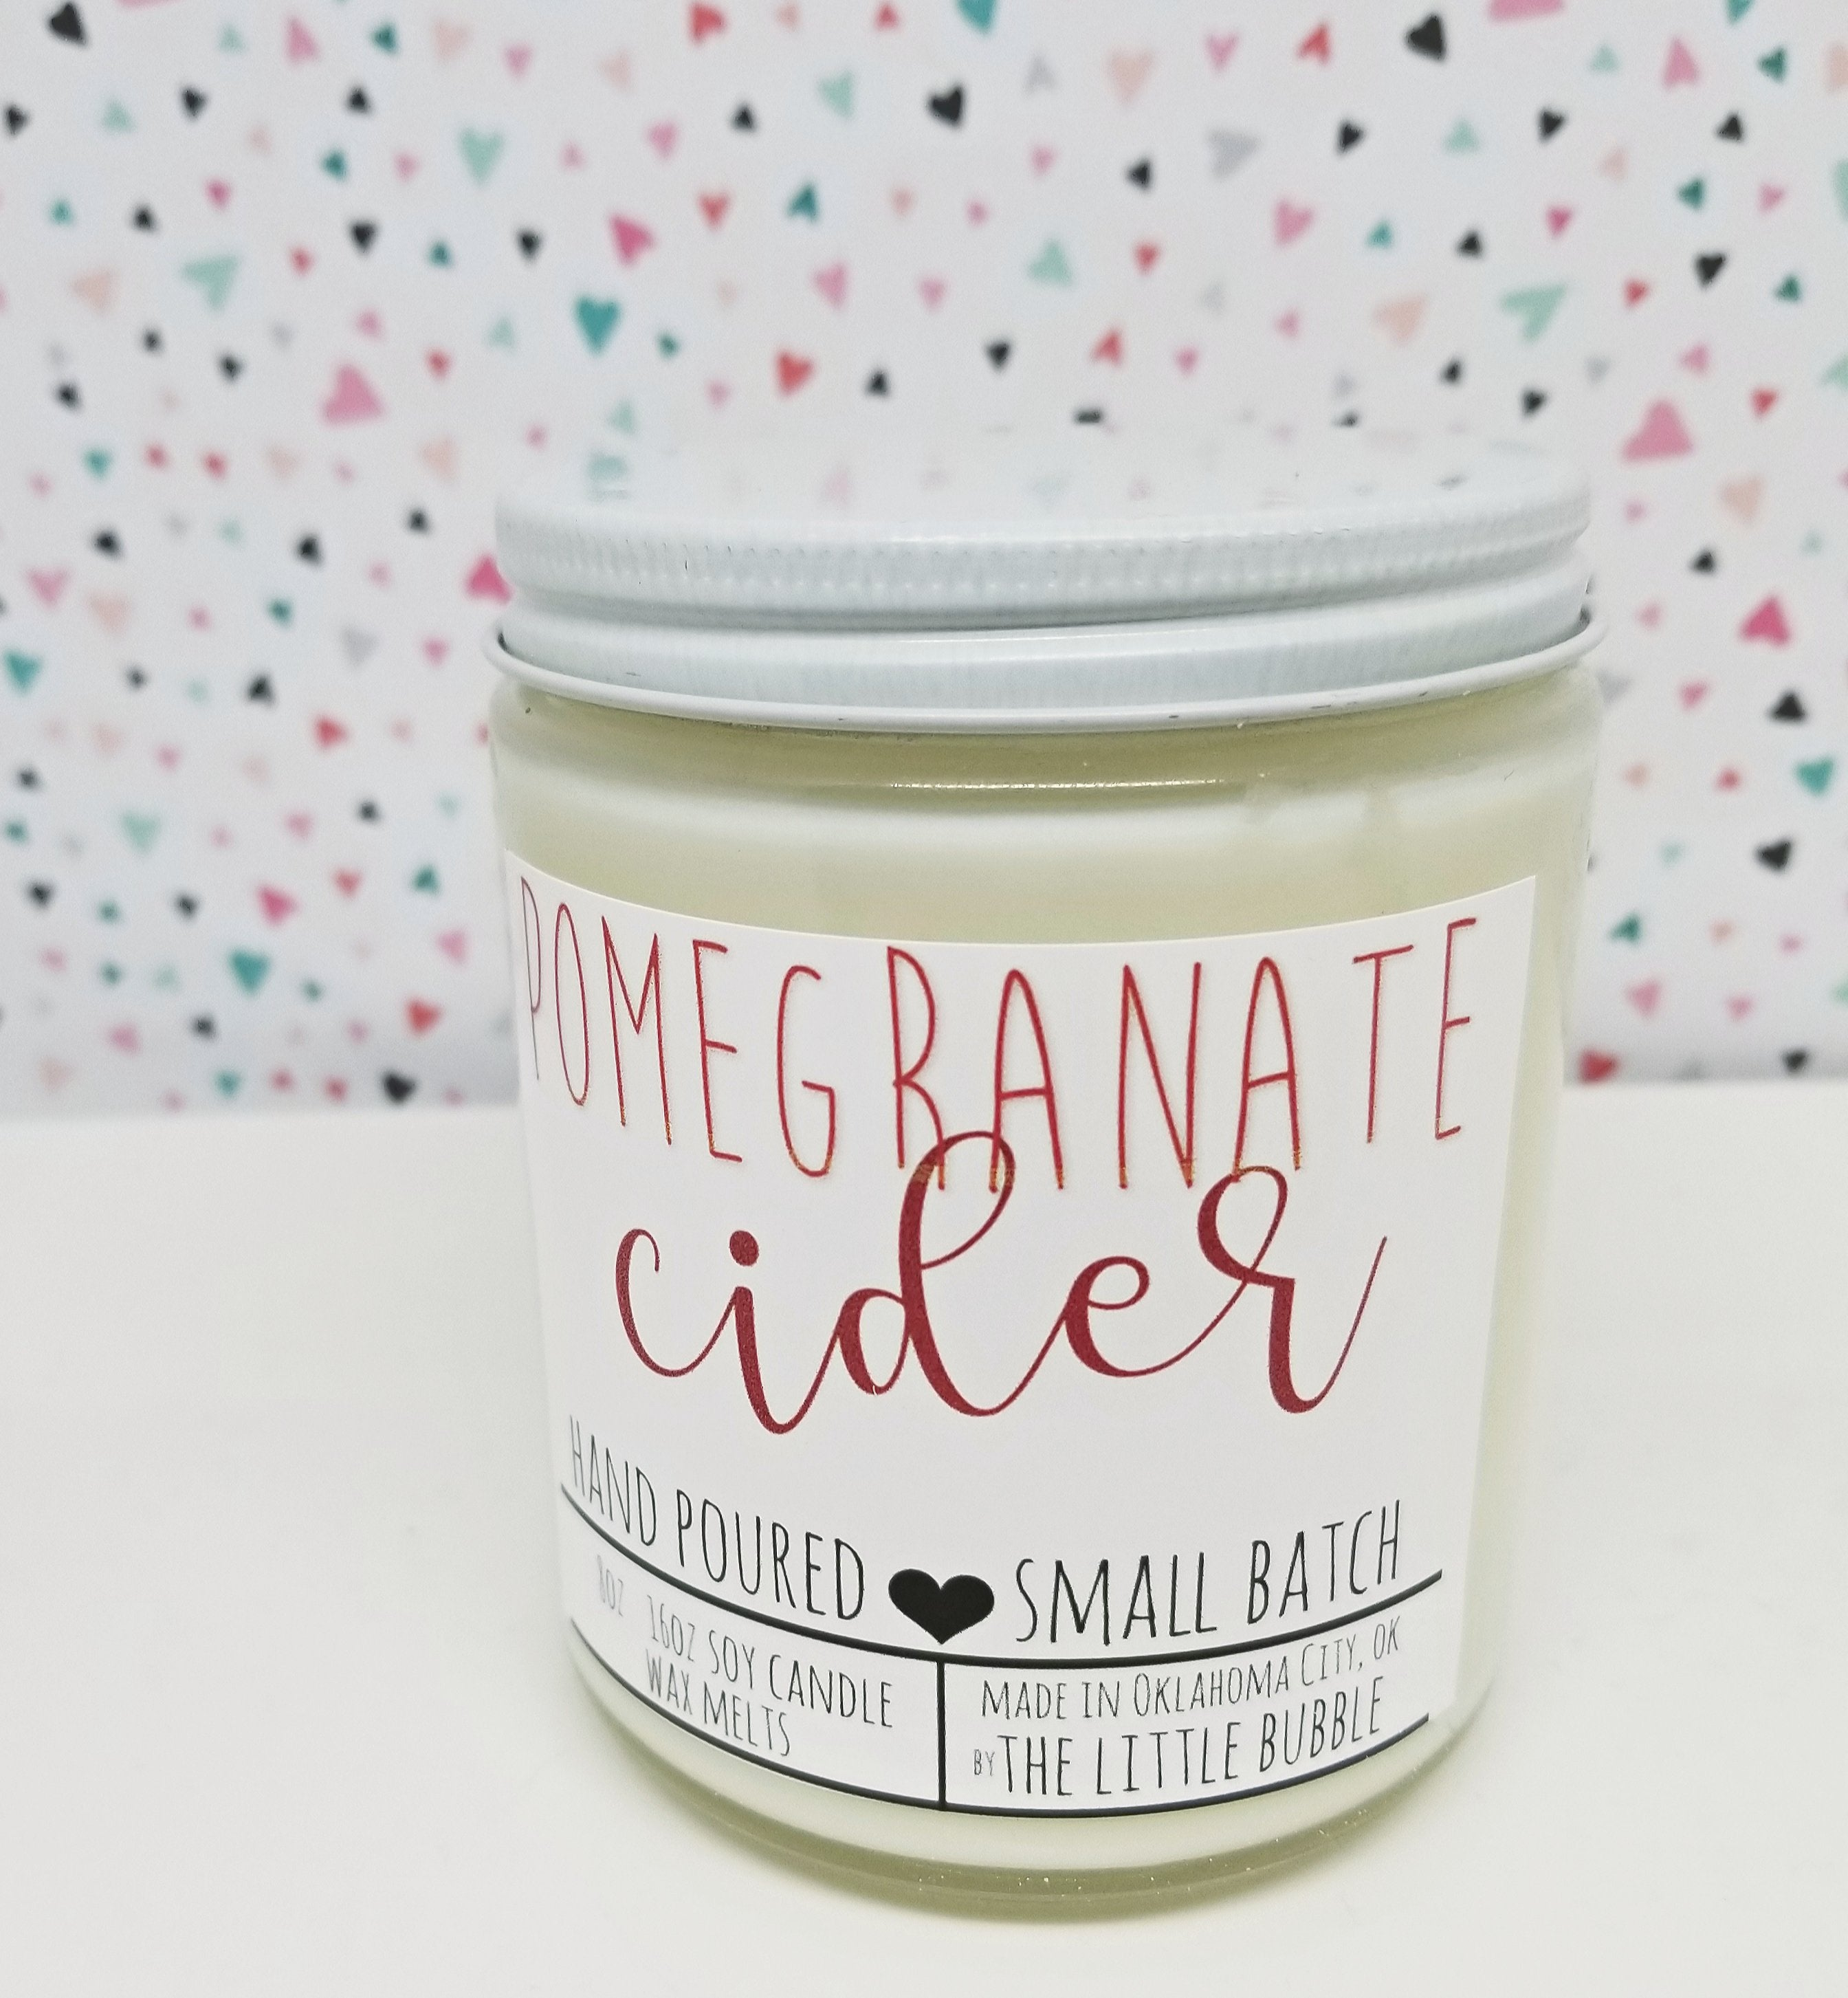 Pomegranate Cider Candle